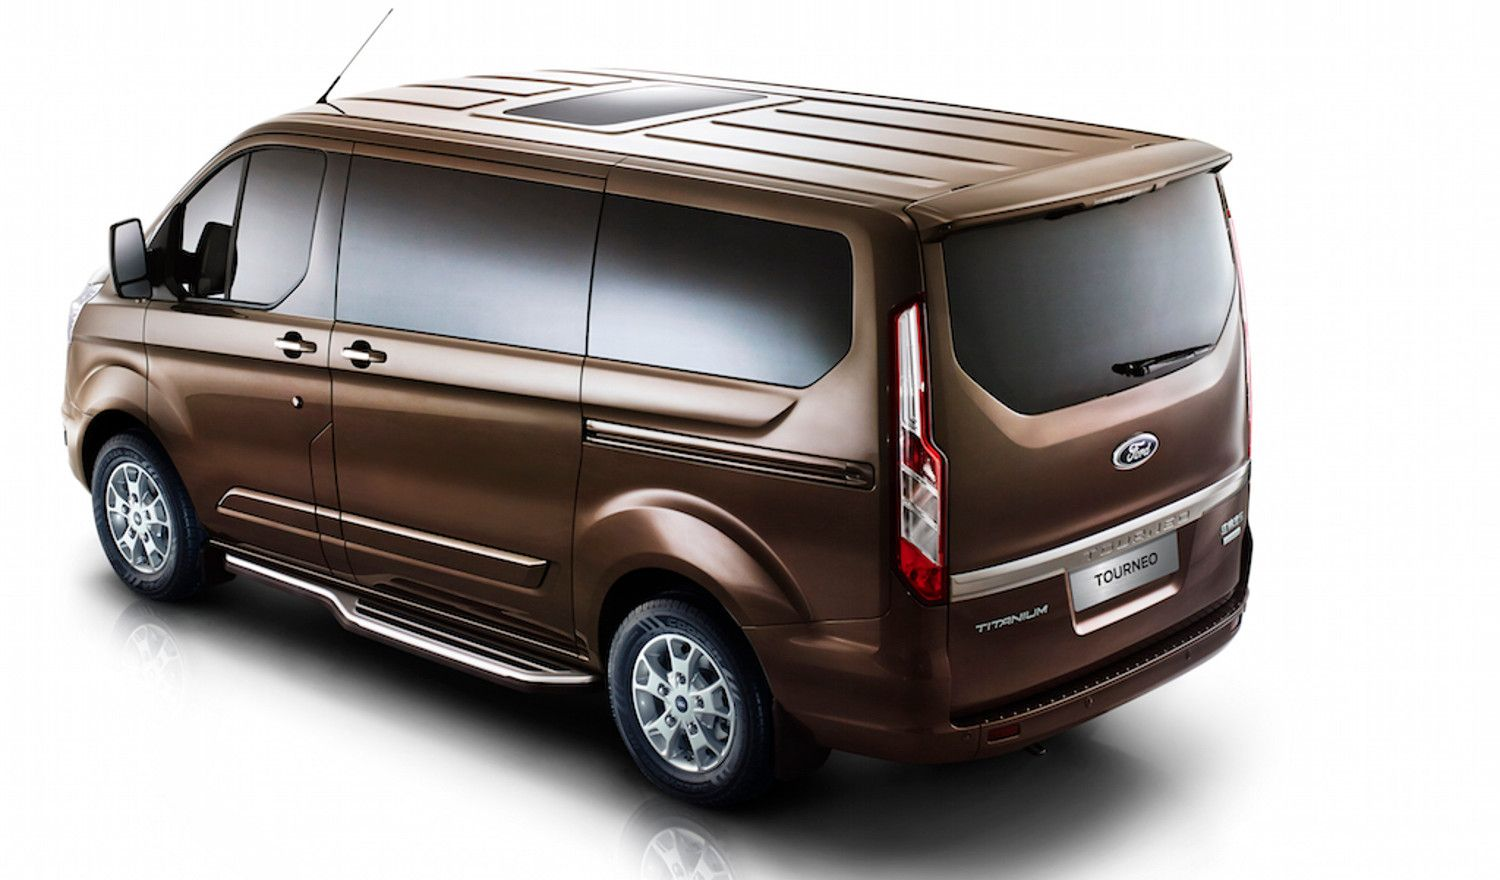 New 2016 Ford Tourneo Mpv For Chinese Market